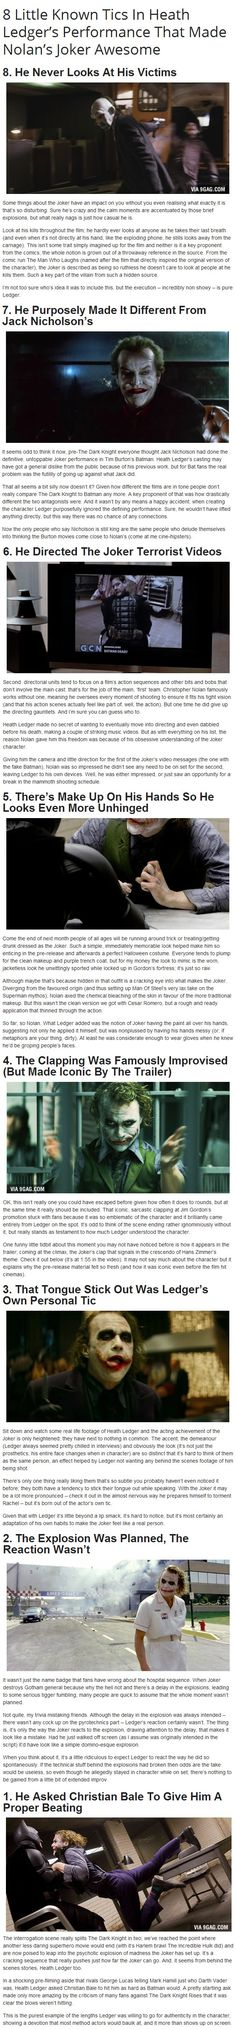 Heath Ledger's The Joker.